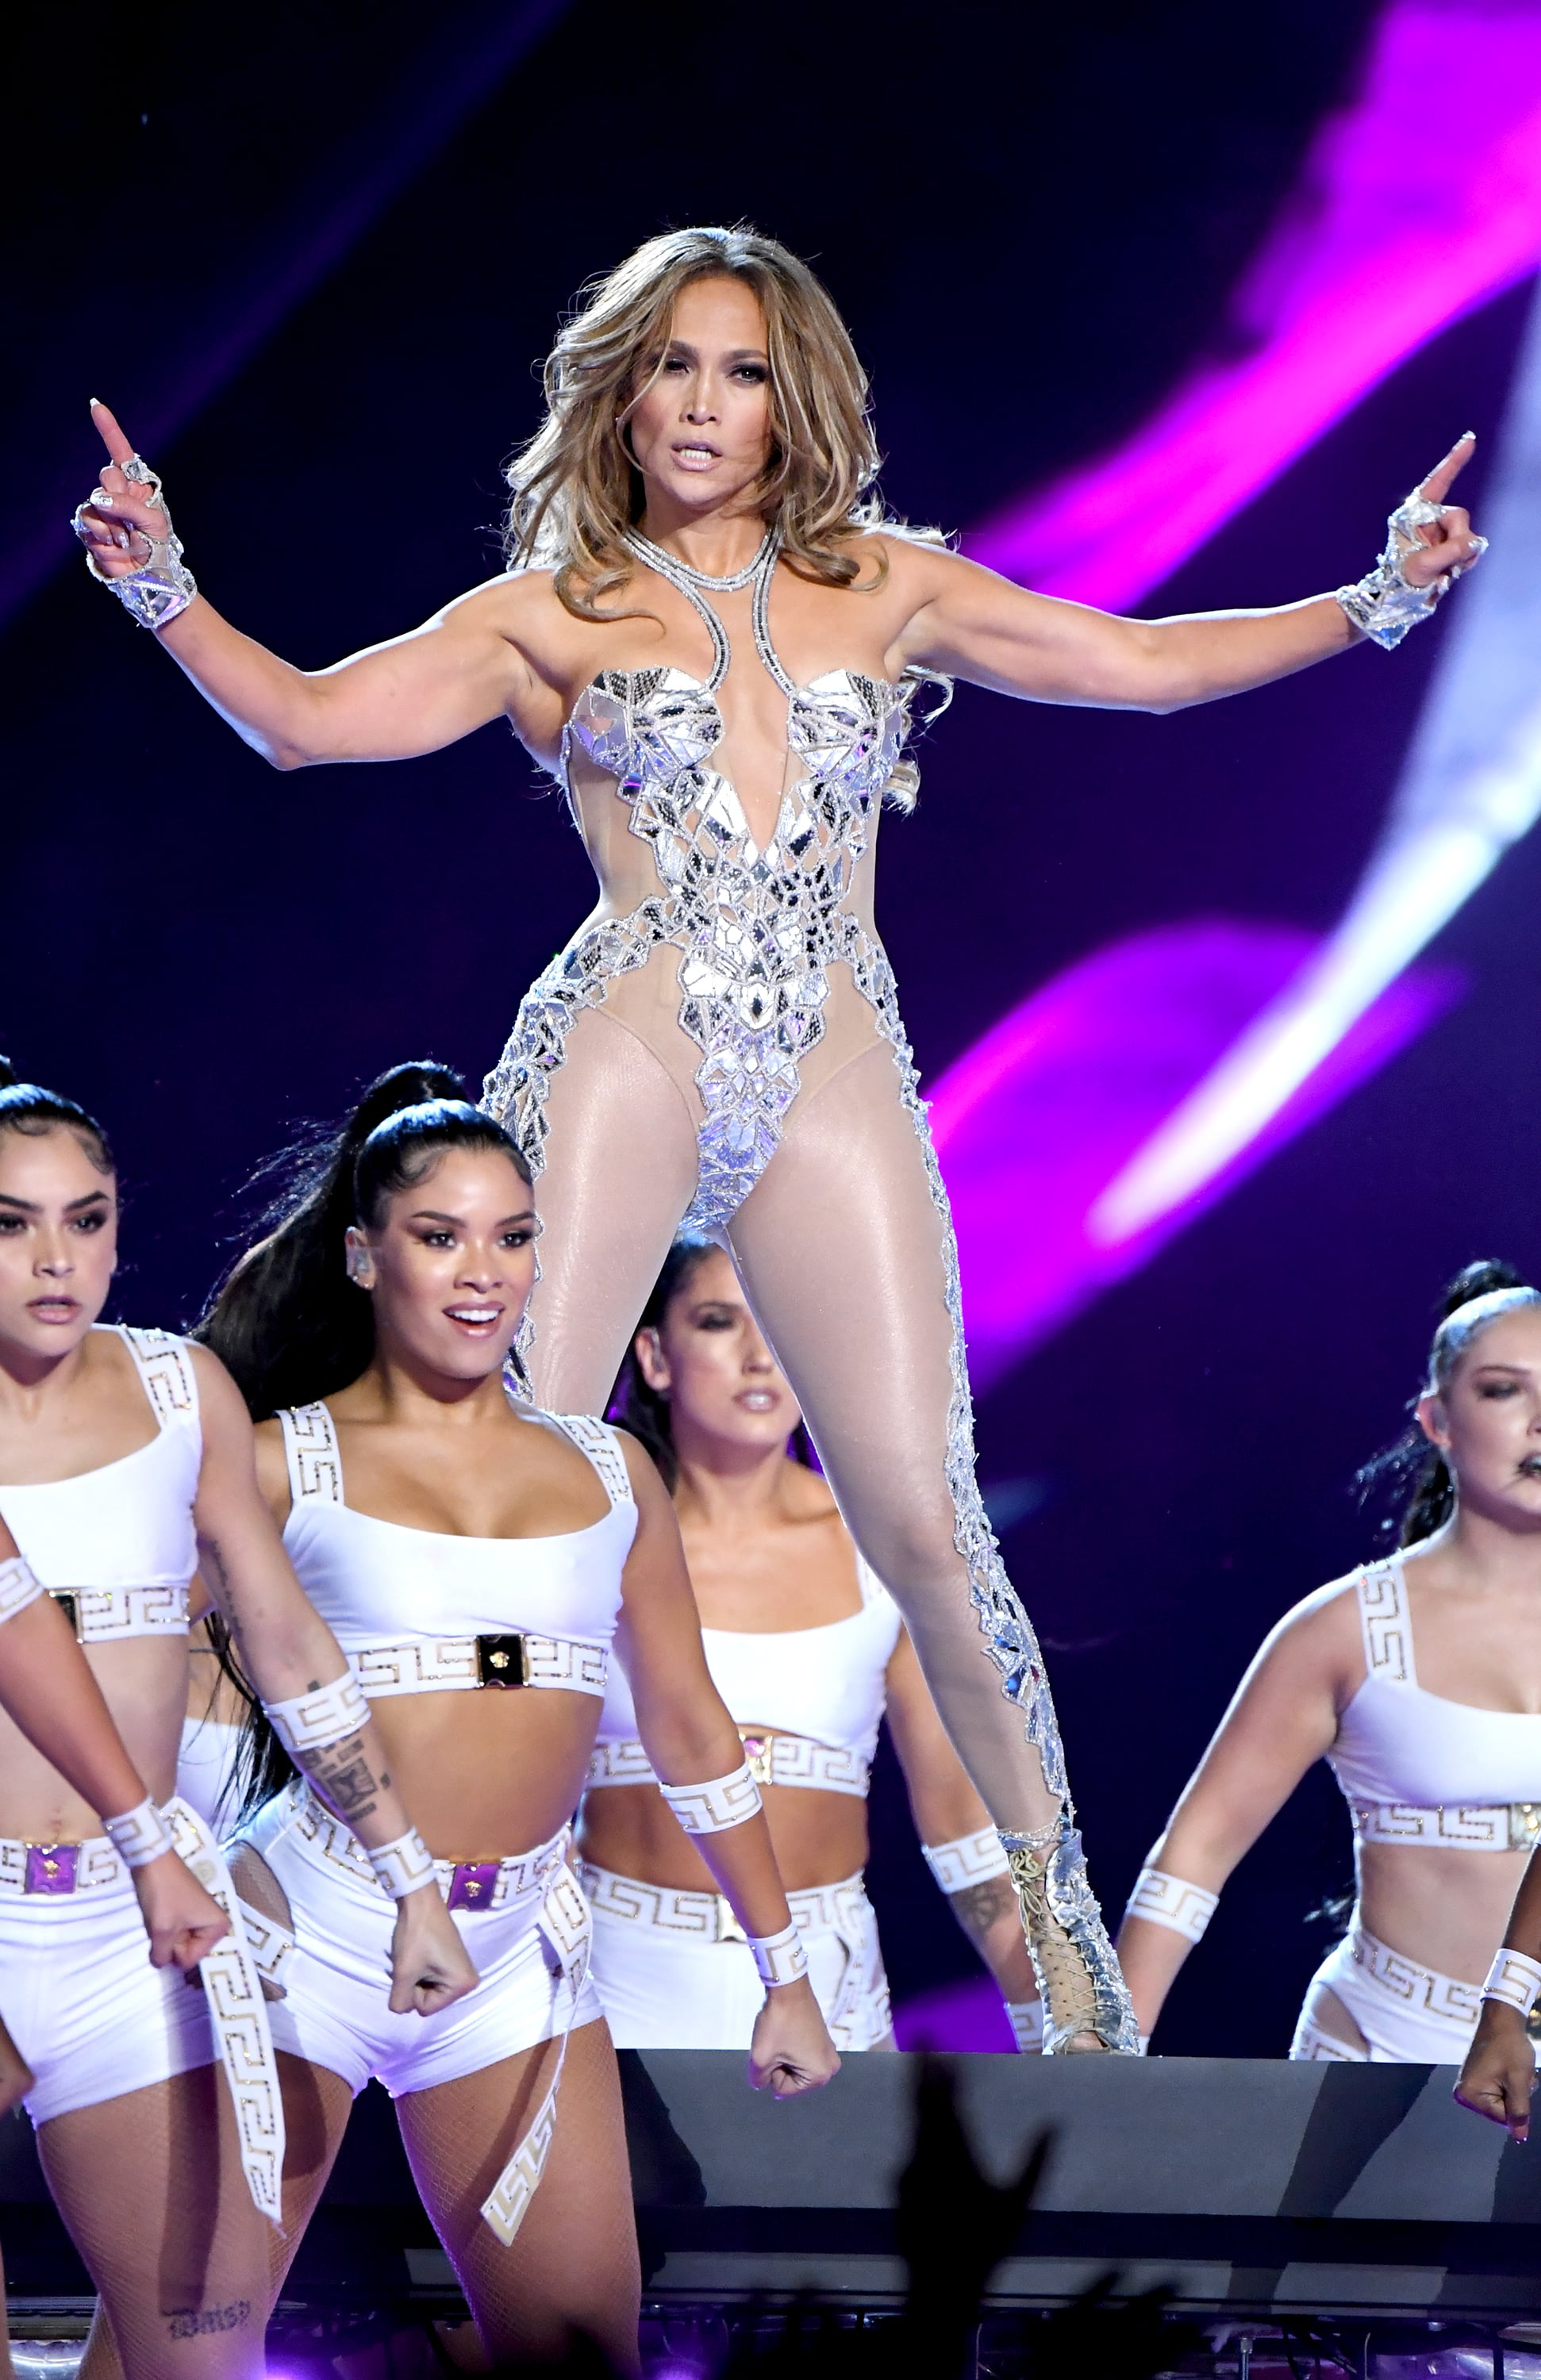 MIAMI, FLORIDA - FEBRUARY 02: Jennifer Lopez performs onstage during the Pepsi Super Bowl LIV Halftime Show at Hard Rock Stadium on February 02, 2020 in Miami, Florida. (Photo by Jeff Kravitz/FilmMagic)